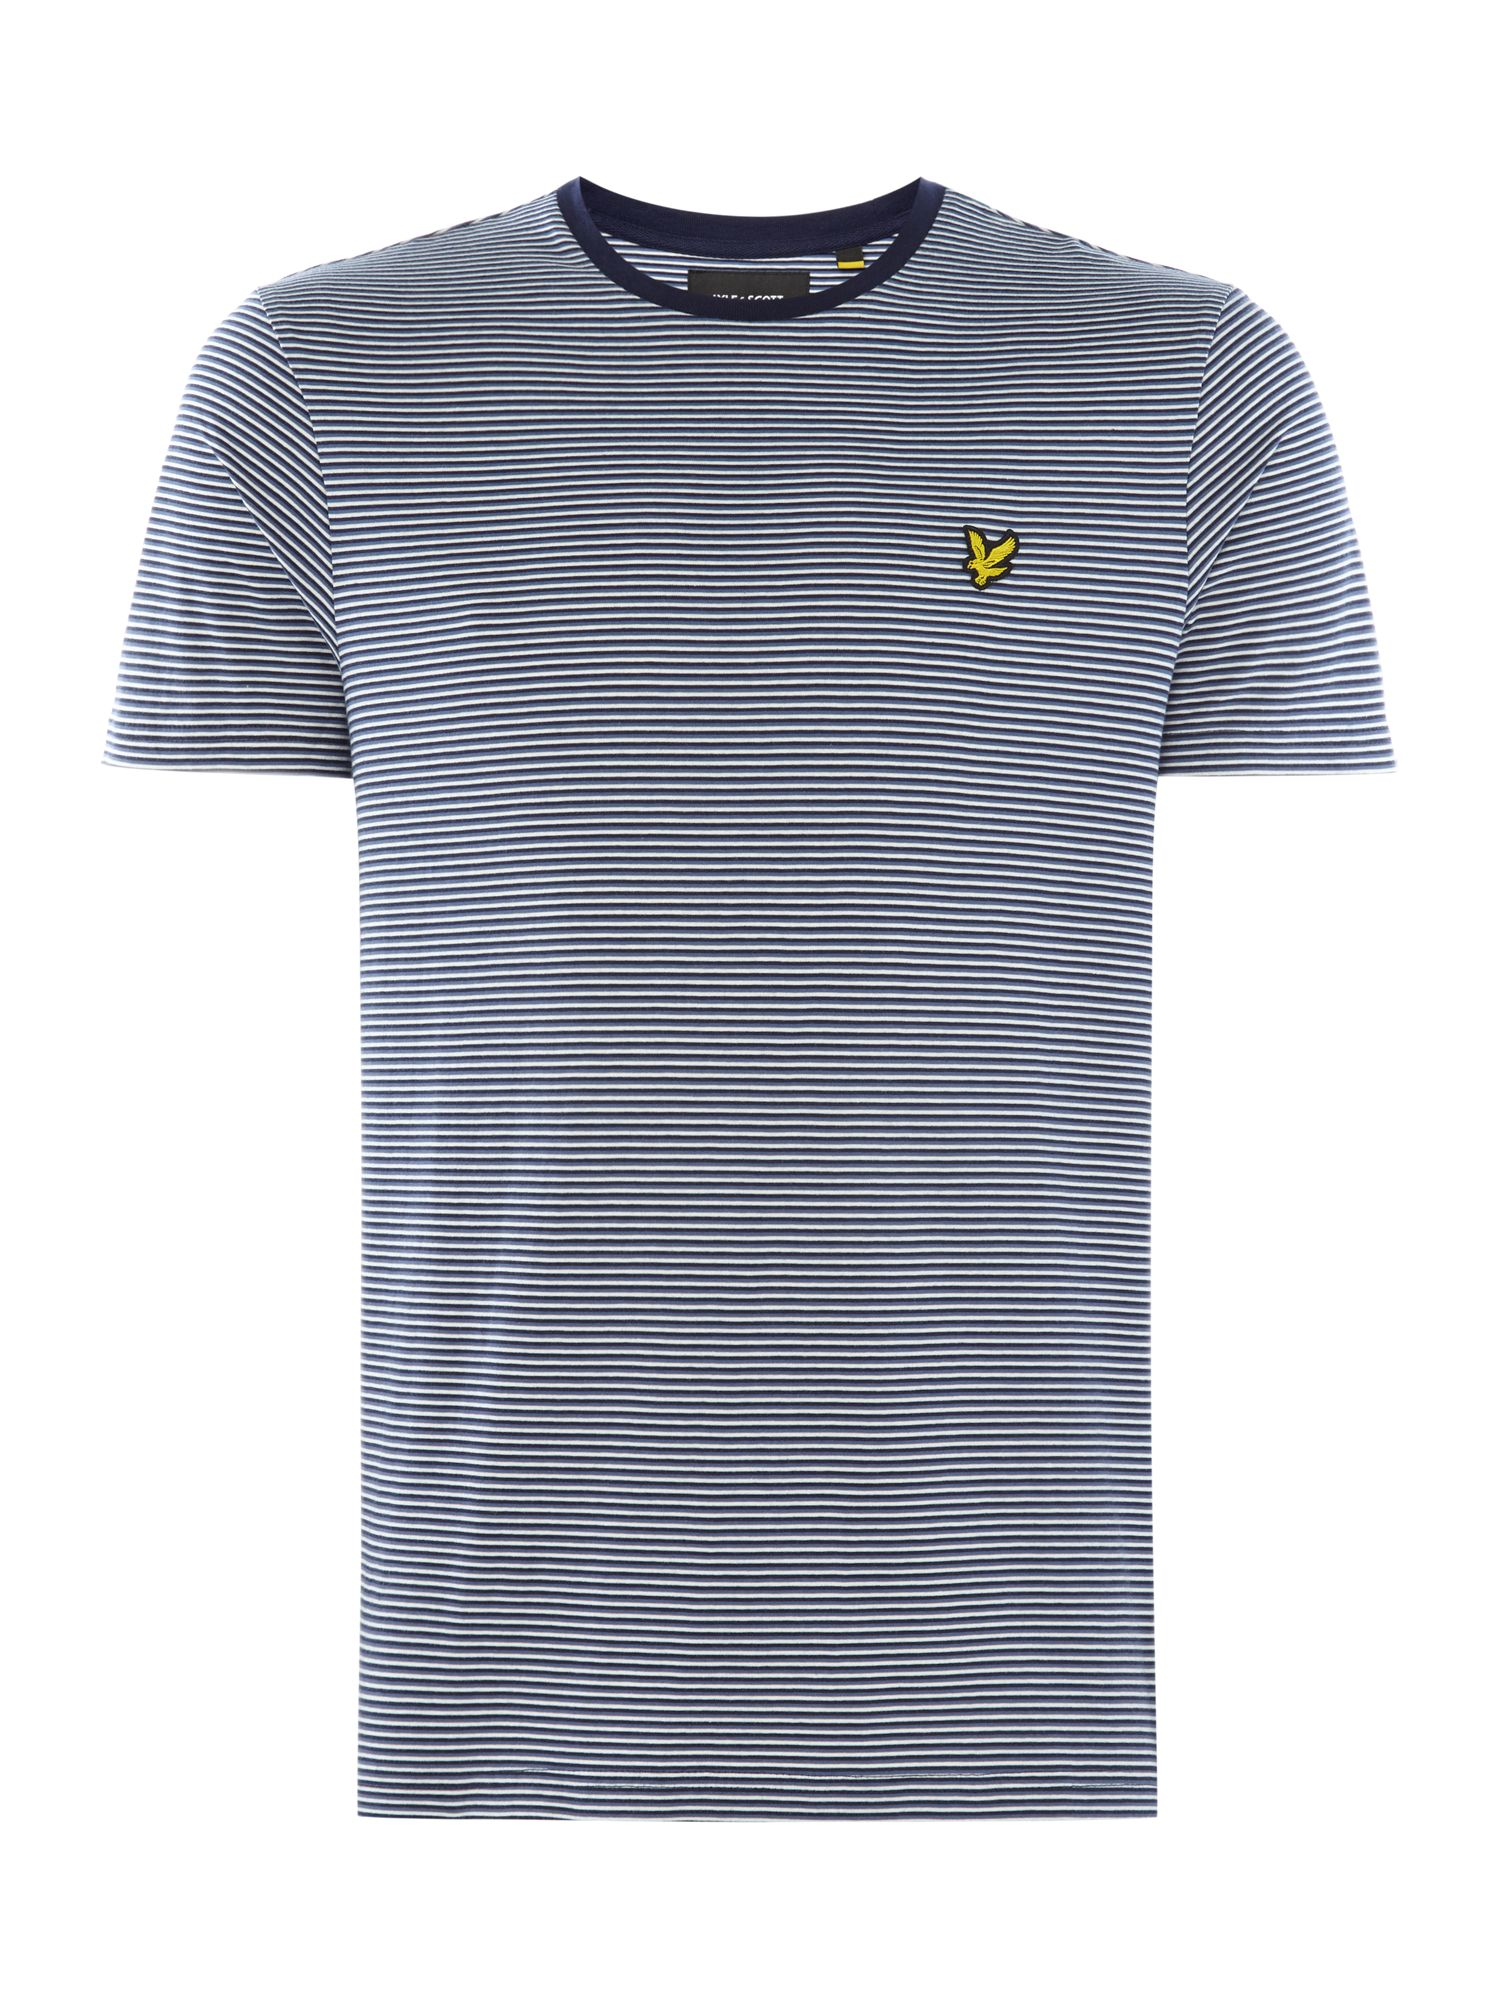 Men's Lyle and Scott Feeder stripe short sleeve tshirt, Blue